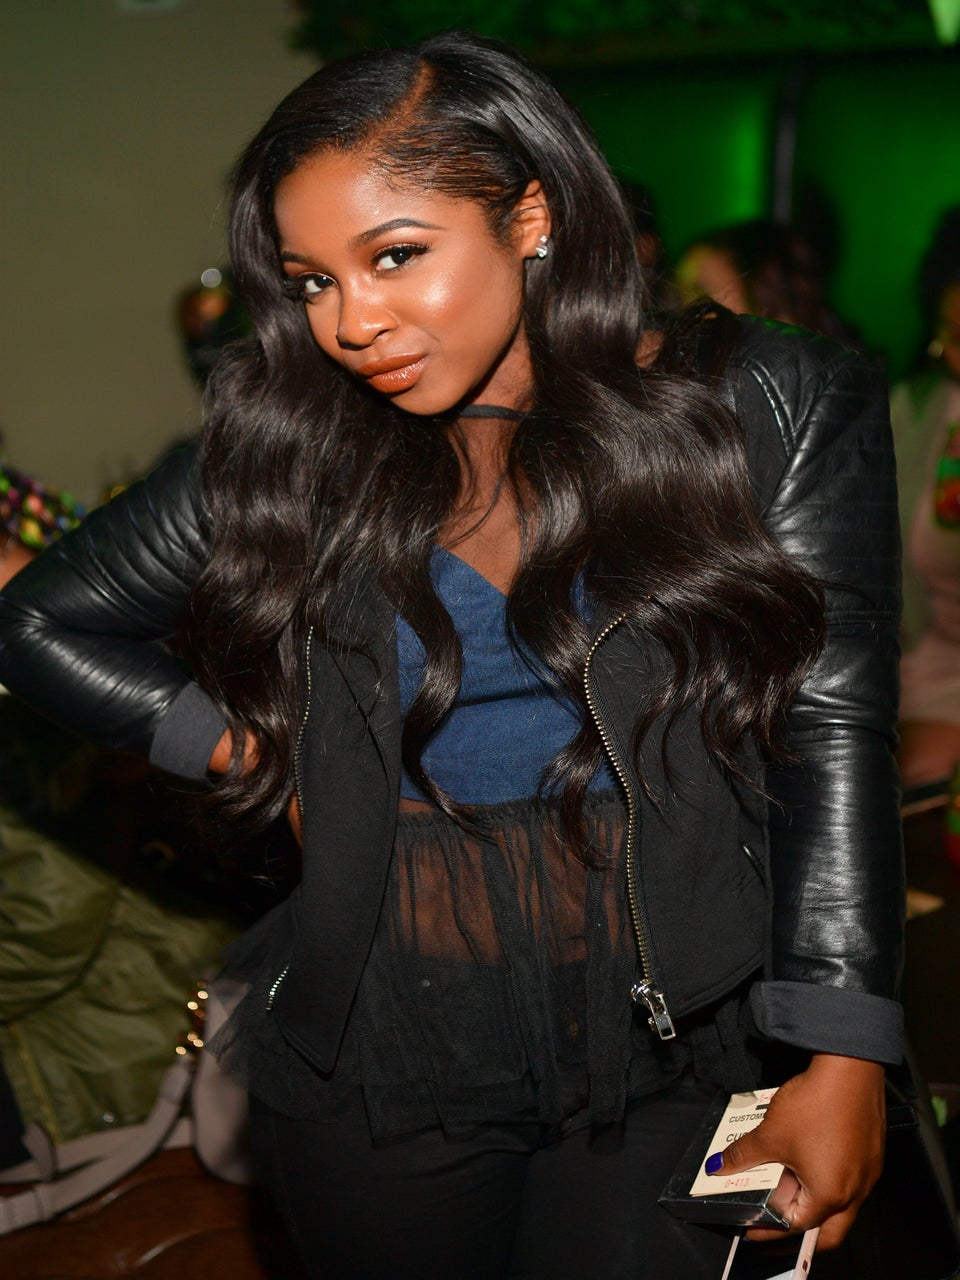 Reginae Carter's Yearbook Quote Is For The Haters